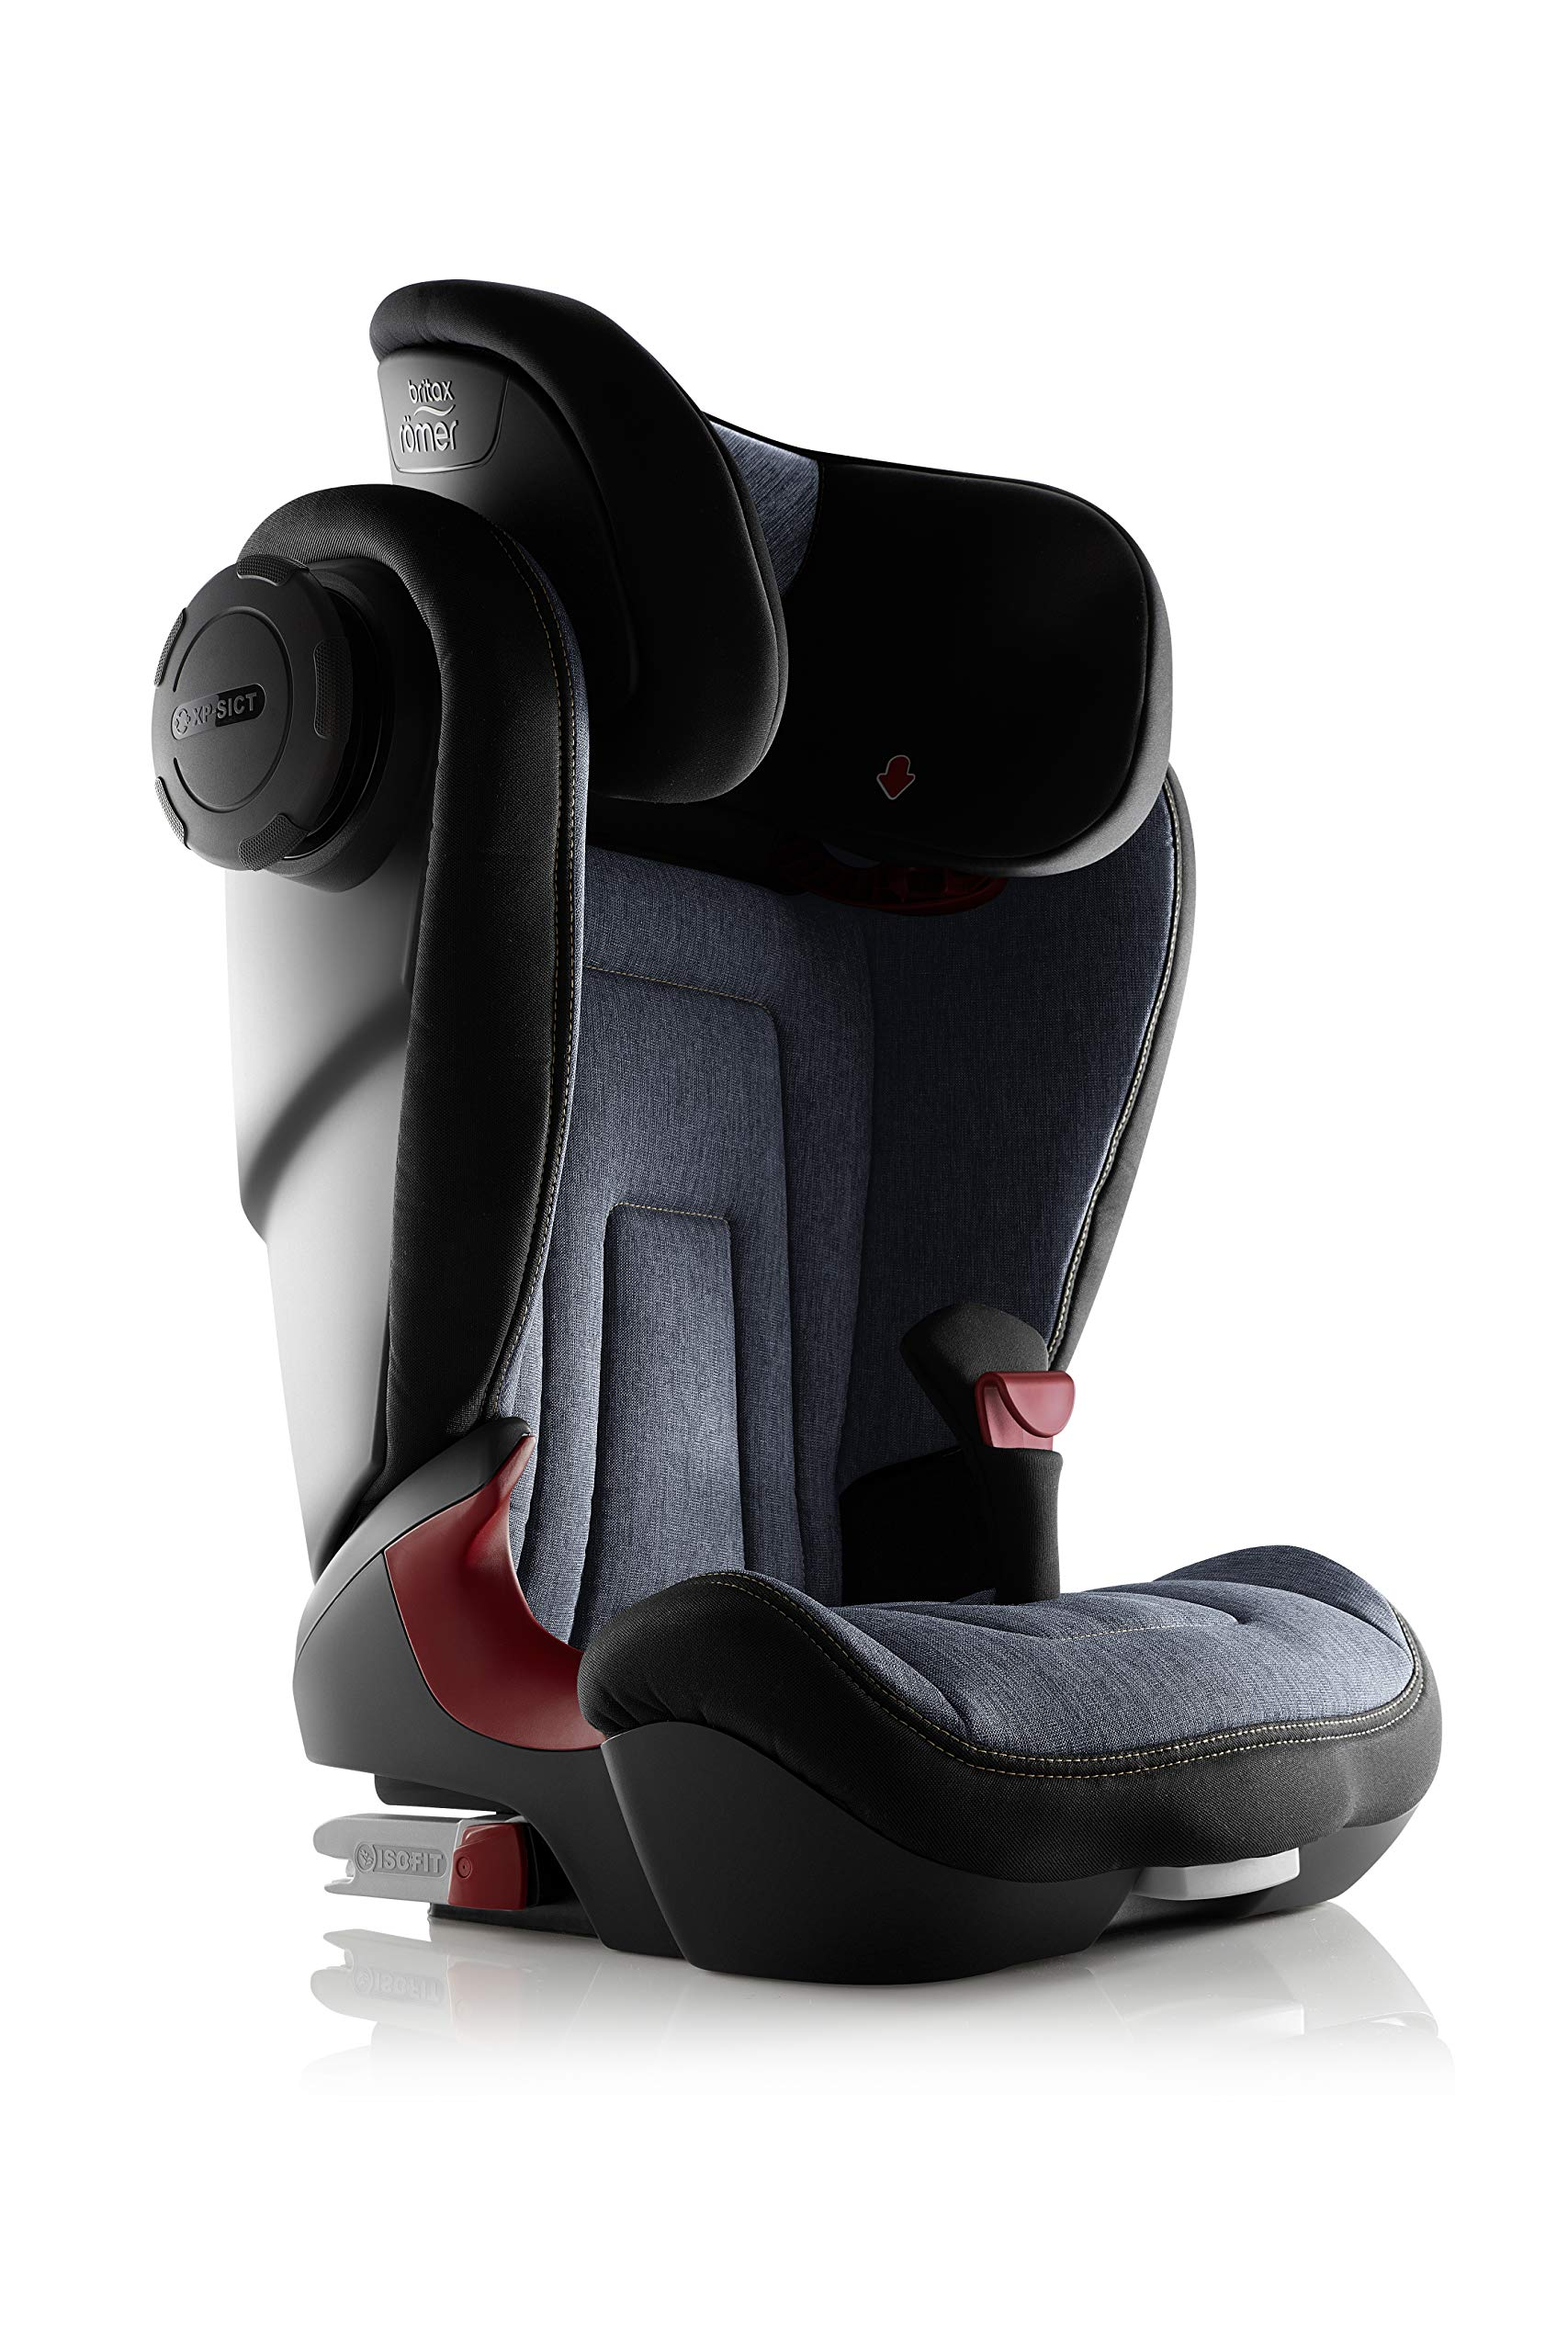 Britax Römer KIDFIX² S Group 2-3 (15-36kg) Car Seat - Blue Marble Britax Römer Advanced side impact protection - sict offers superior protection to your child in the event of a side collision. reducing impact forces by minimising the distance between the car and the car seat. Secure guard - helps to protect your child's delicate abdominal area by adding an extra - a 4th - contact point to the 3-point seat belt. High back booster - protects your child in 3 ways: provides head to hip protection; belt guides provide correct positioning of the seat belt and the padded headrest provides safety and comfort. 4